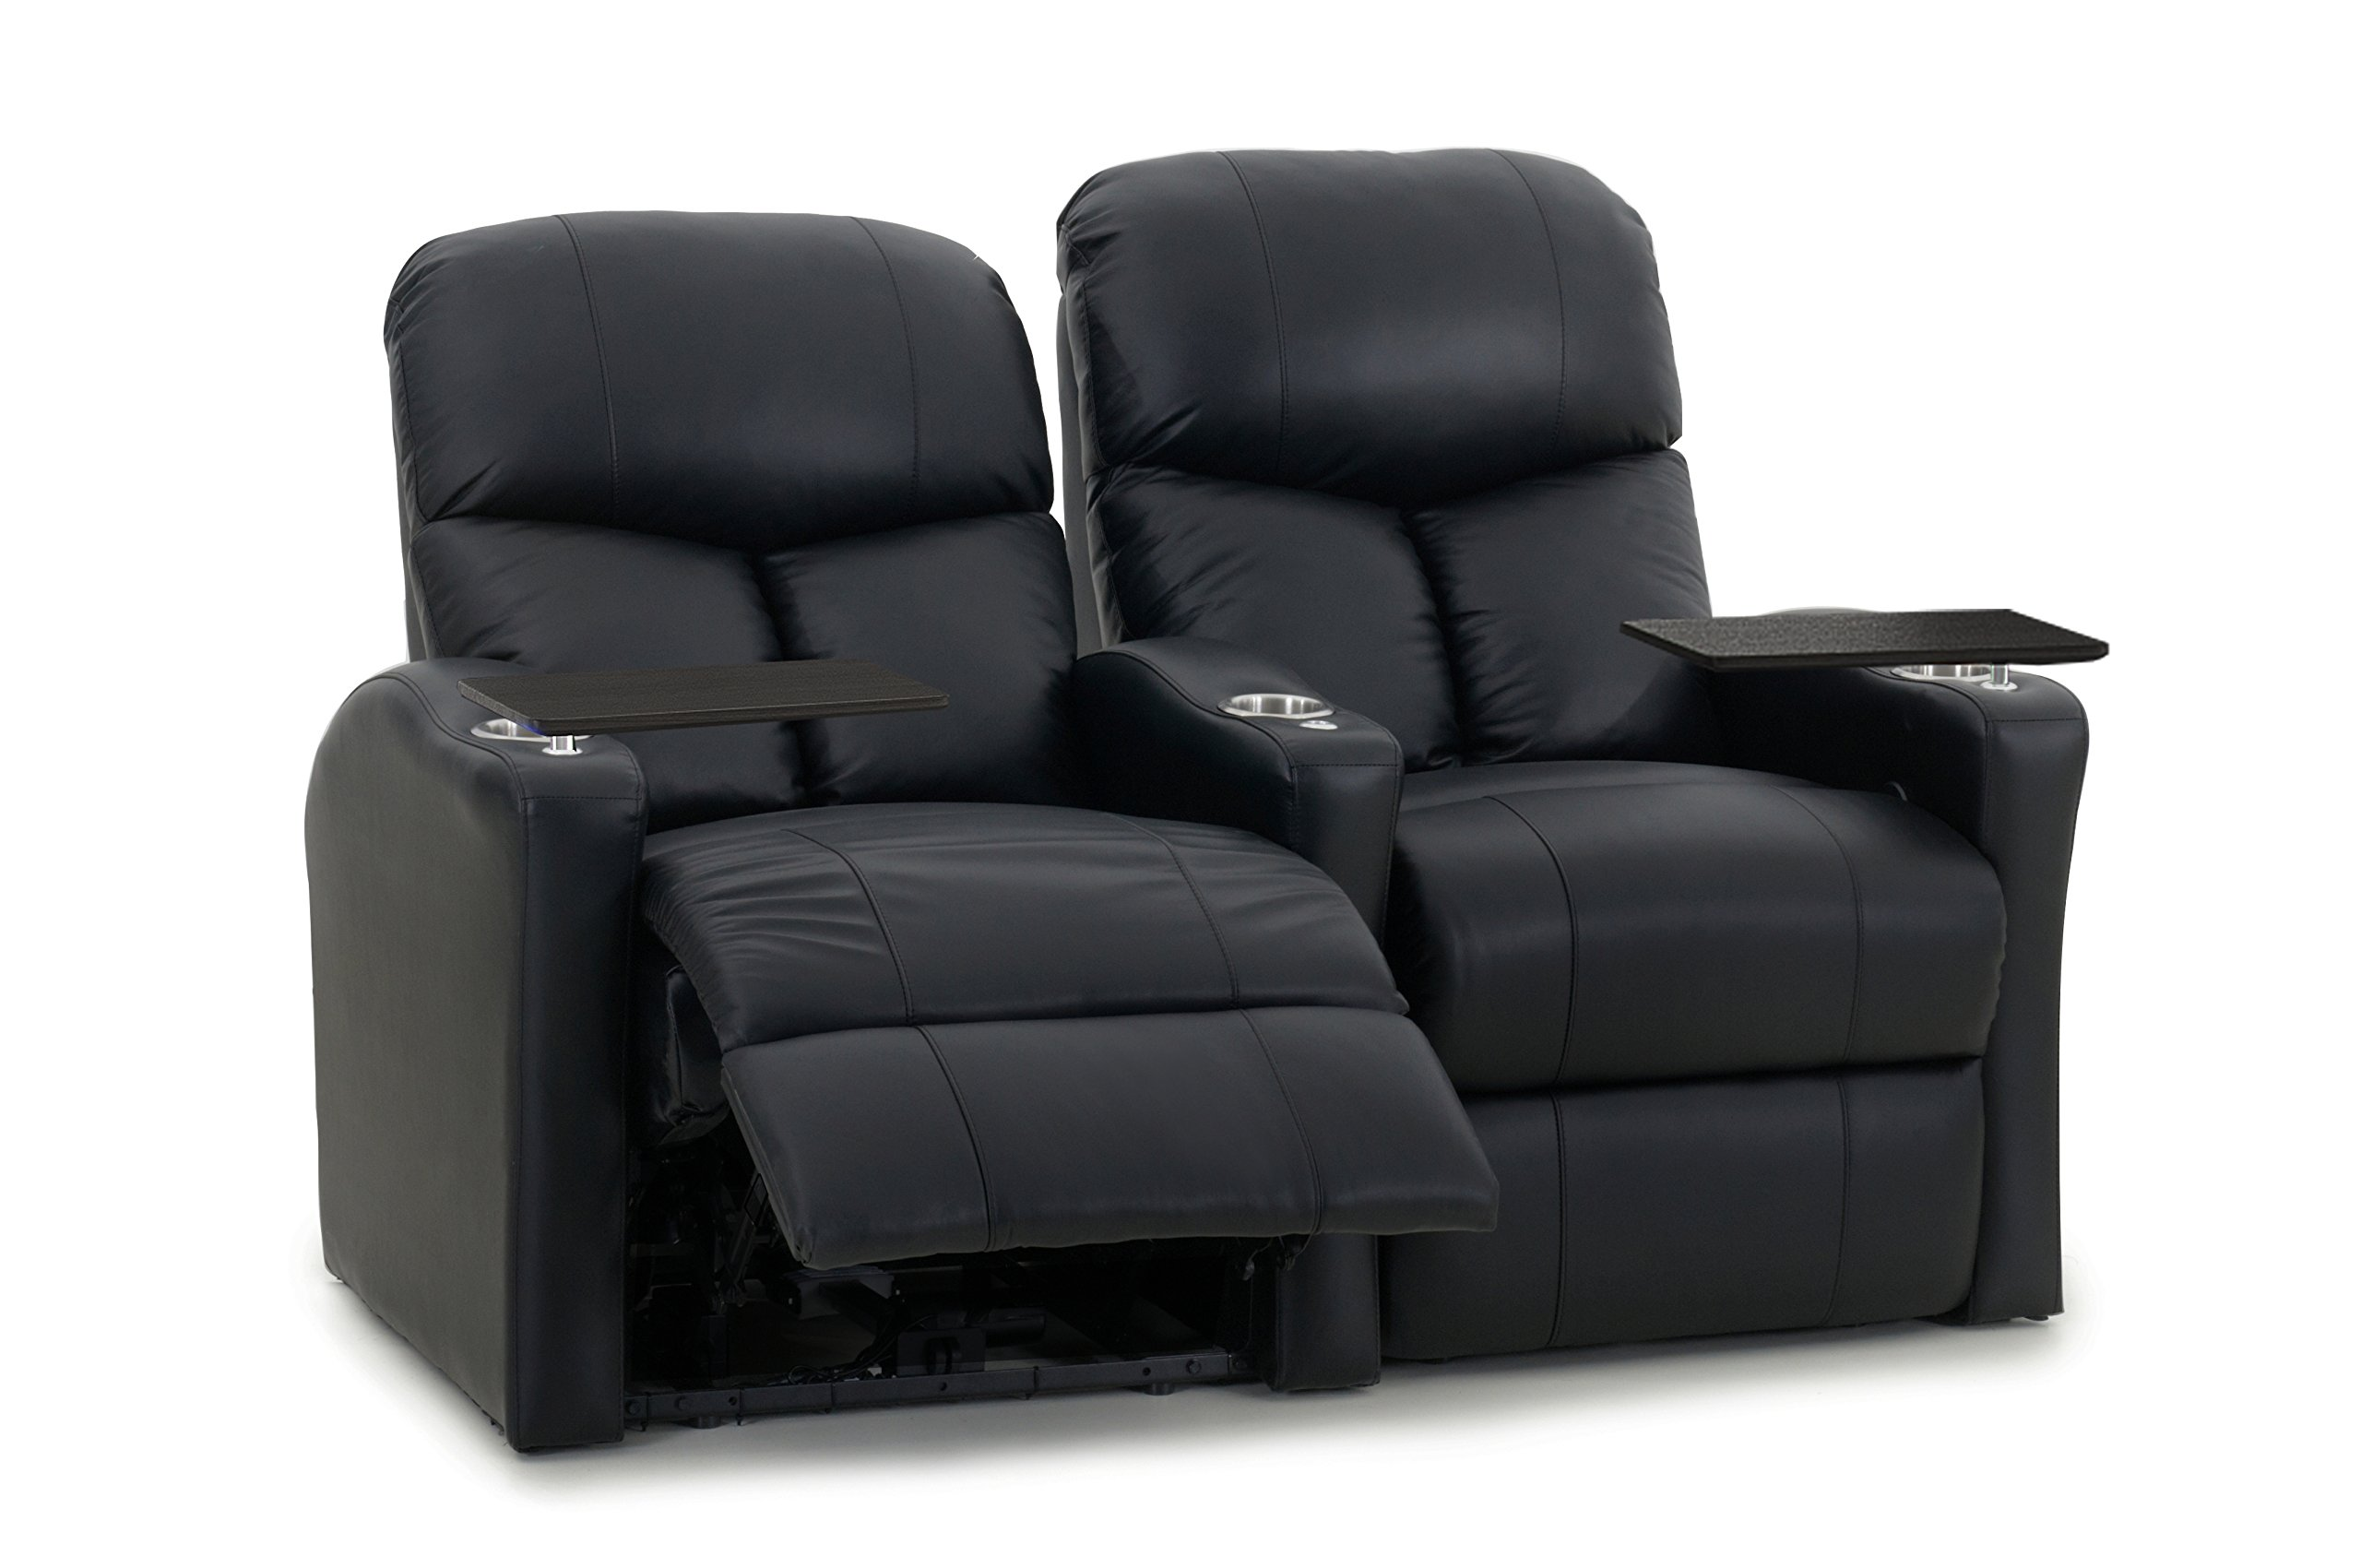 Octane Seating BOLT-R2SP-BND-BL Octane Bolt XS400 Motorized Leather Home Theater Recliner Set (Row of 2)